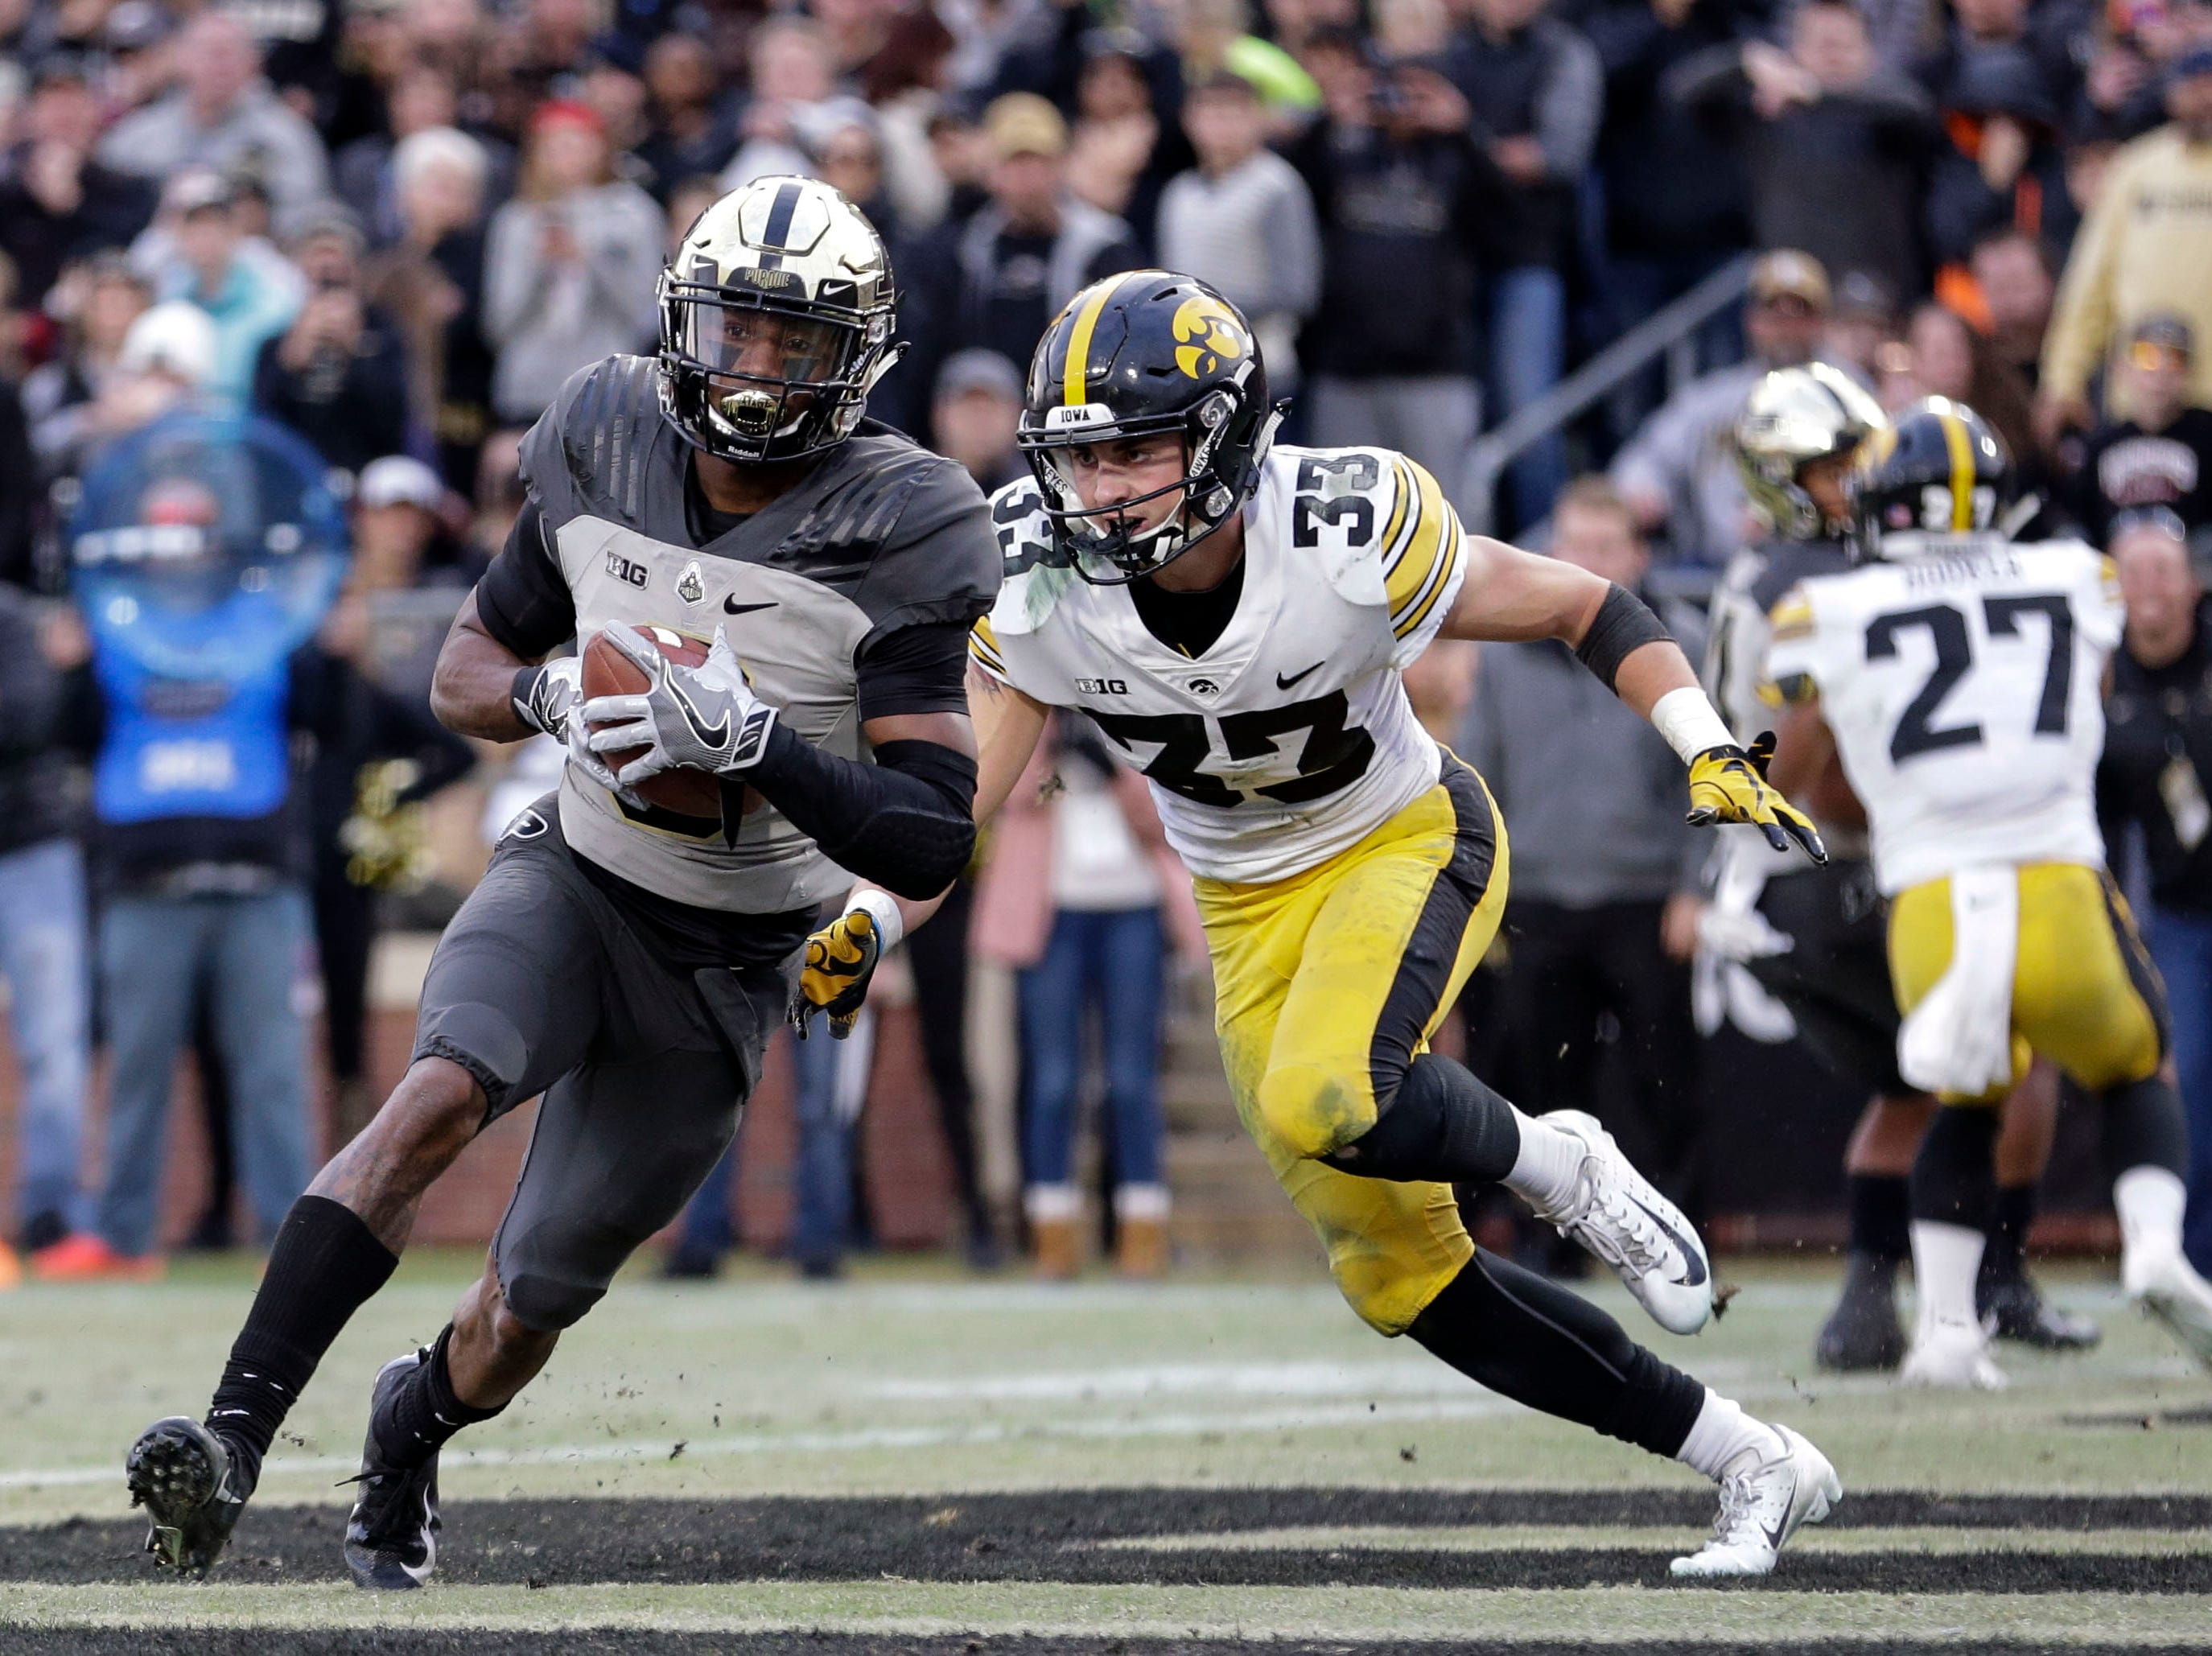 Purdue wide receiver Terry Wright, left, scores a touchdown in front of Iowa defensive back Riley Moss (33) in the second half of an NCAA college football game in West Lafayette, Ind., Saturday, Nov. 3, 2018.